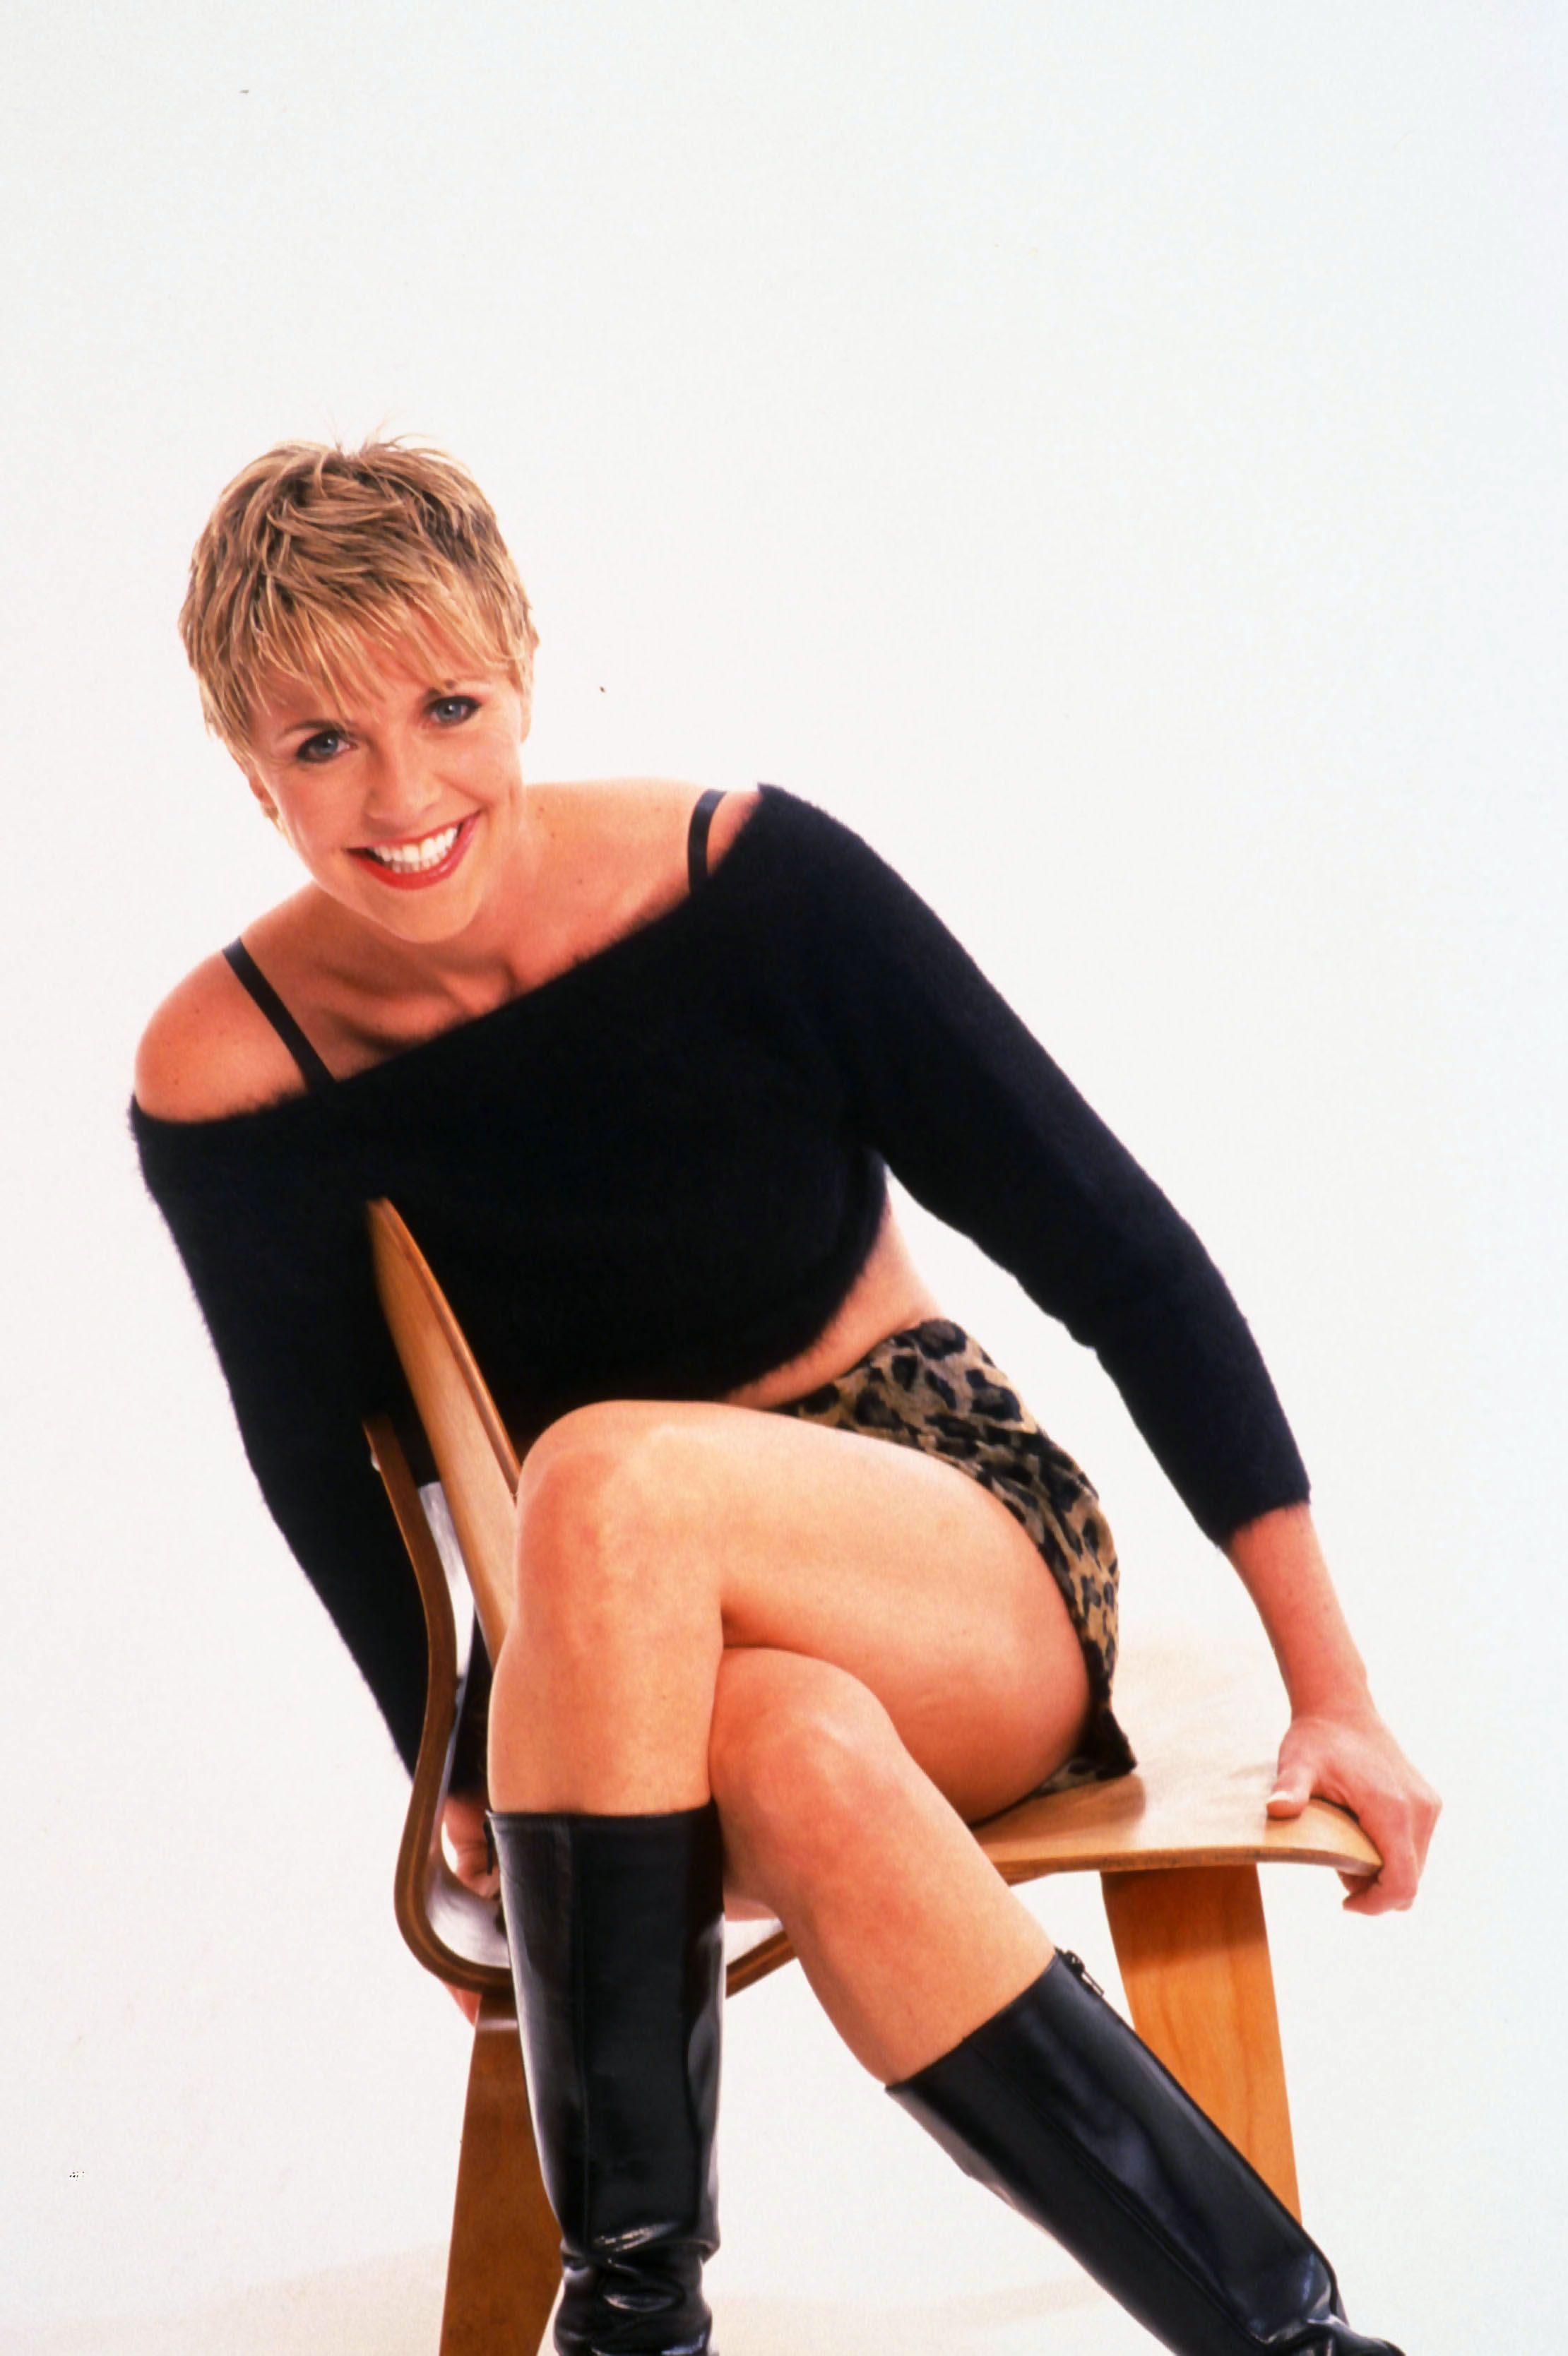 Amanda tapping in the shower agree, this